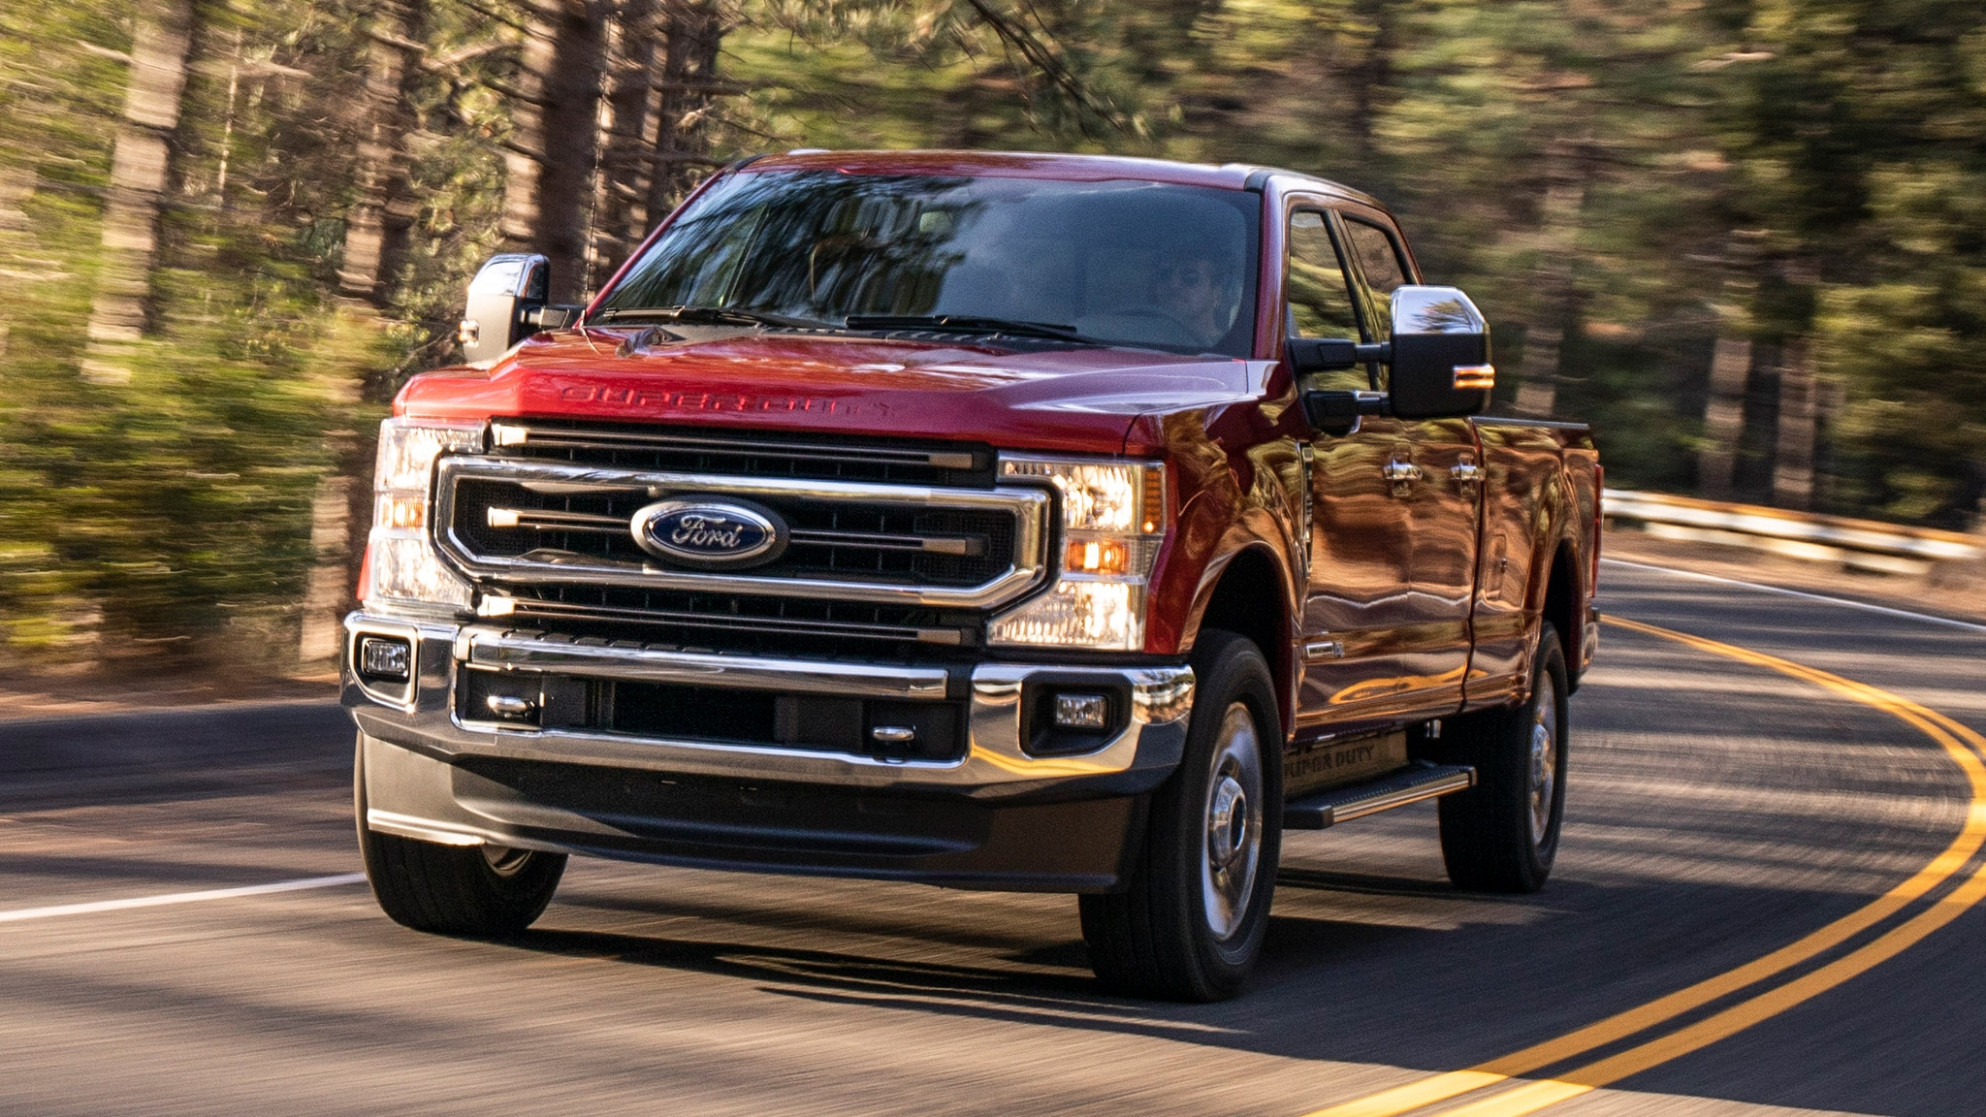 6 Ford Super Duty: Engine Specs, Towing Capacity Revealed